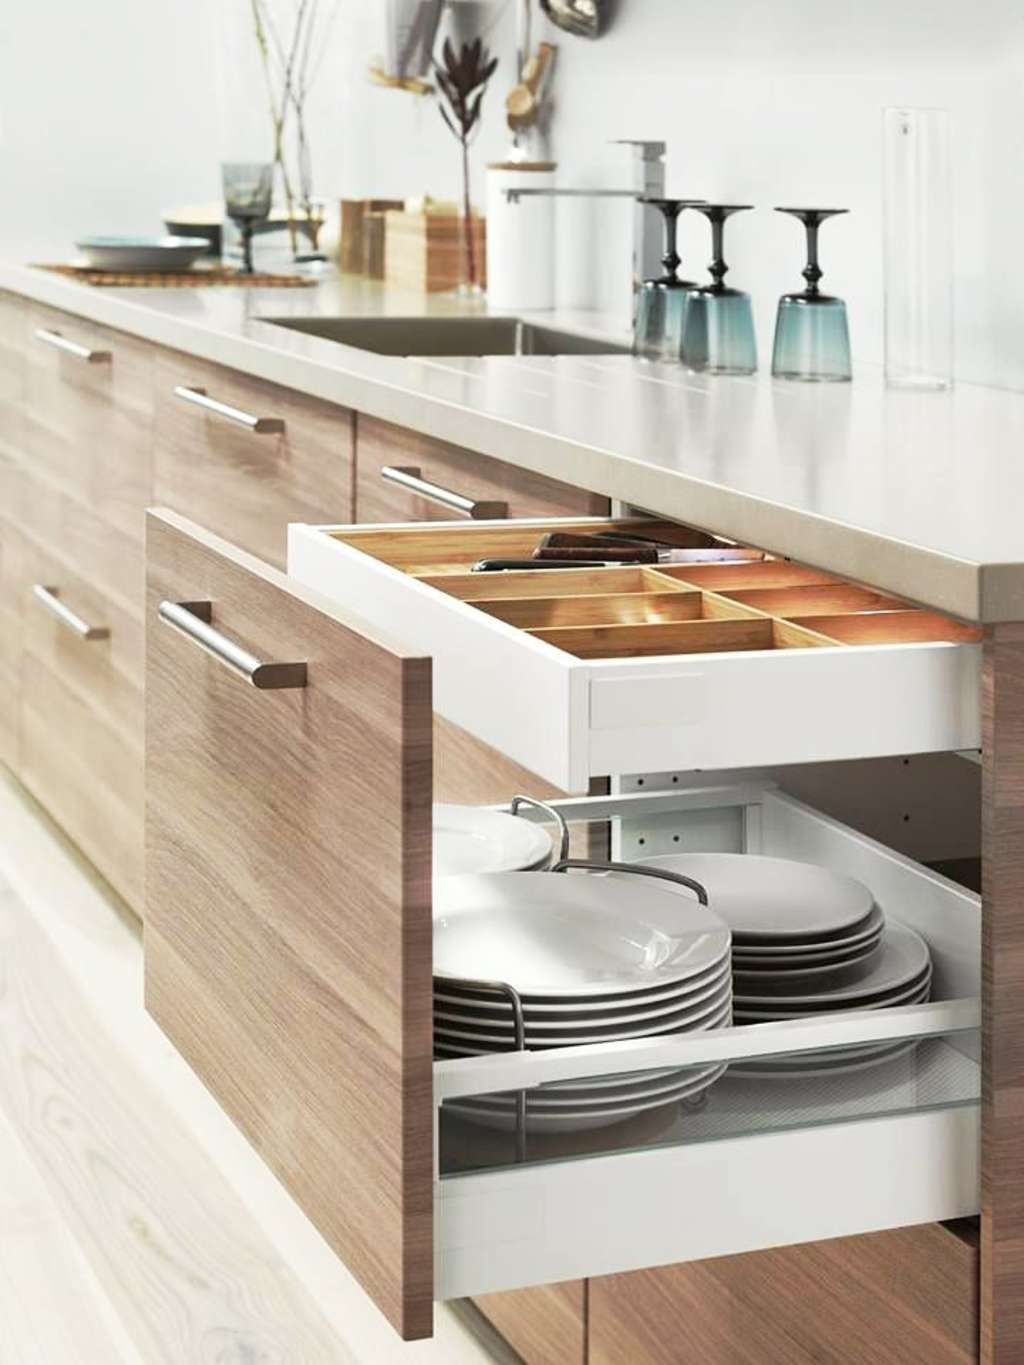 A Happier Kitchen With $100 or Less: The Ultimate IKEA Cabinet Organizer Shopping List